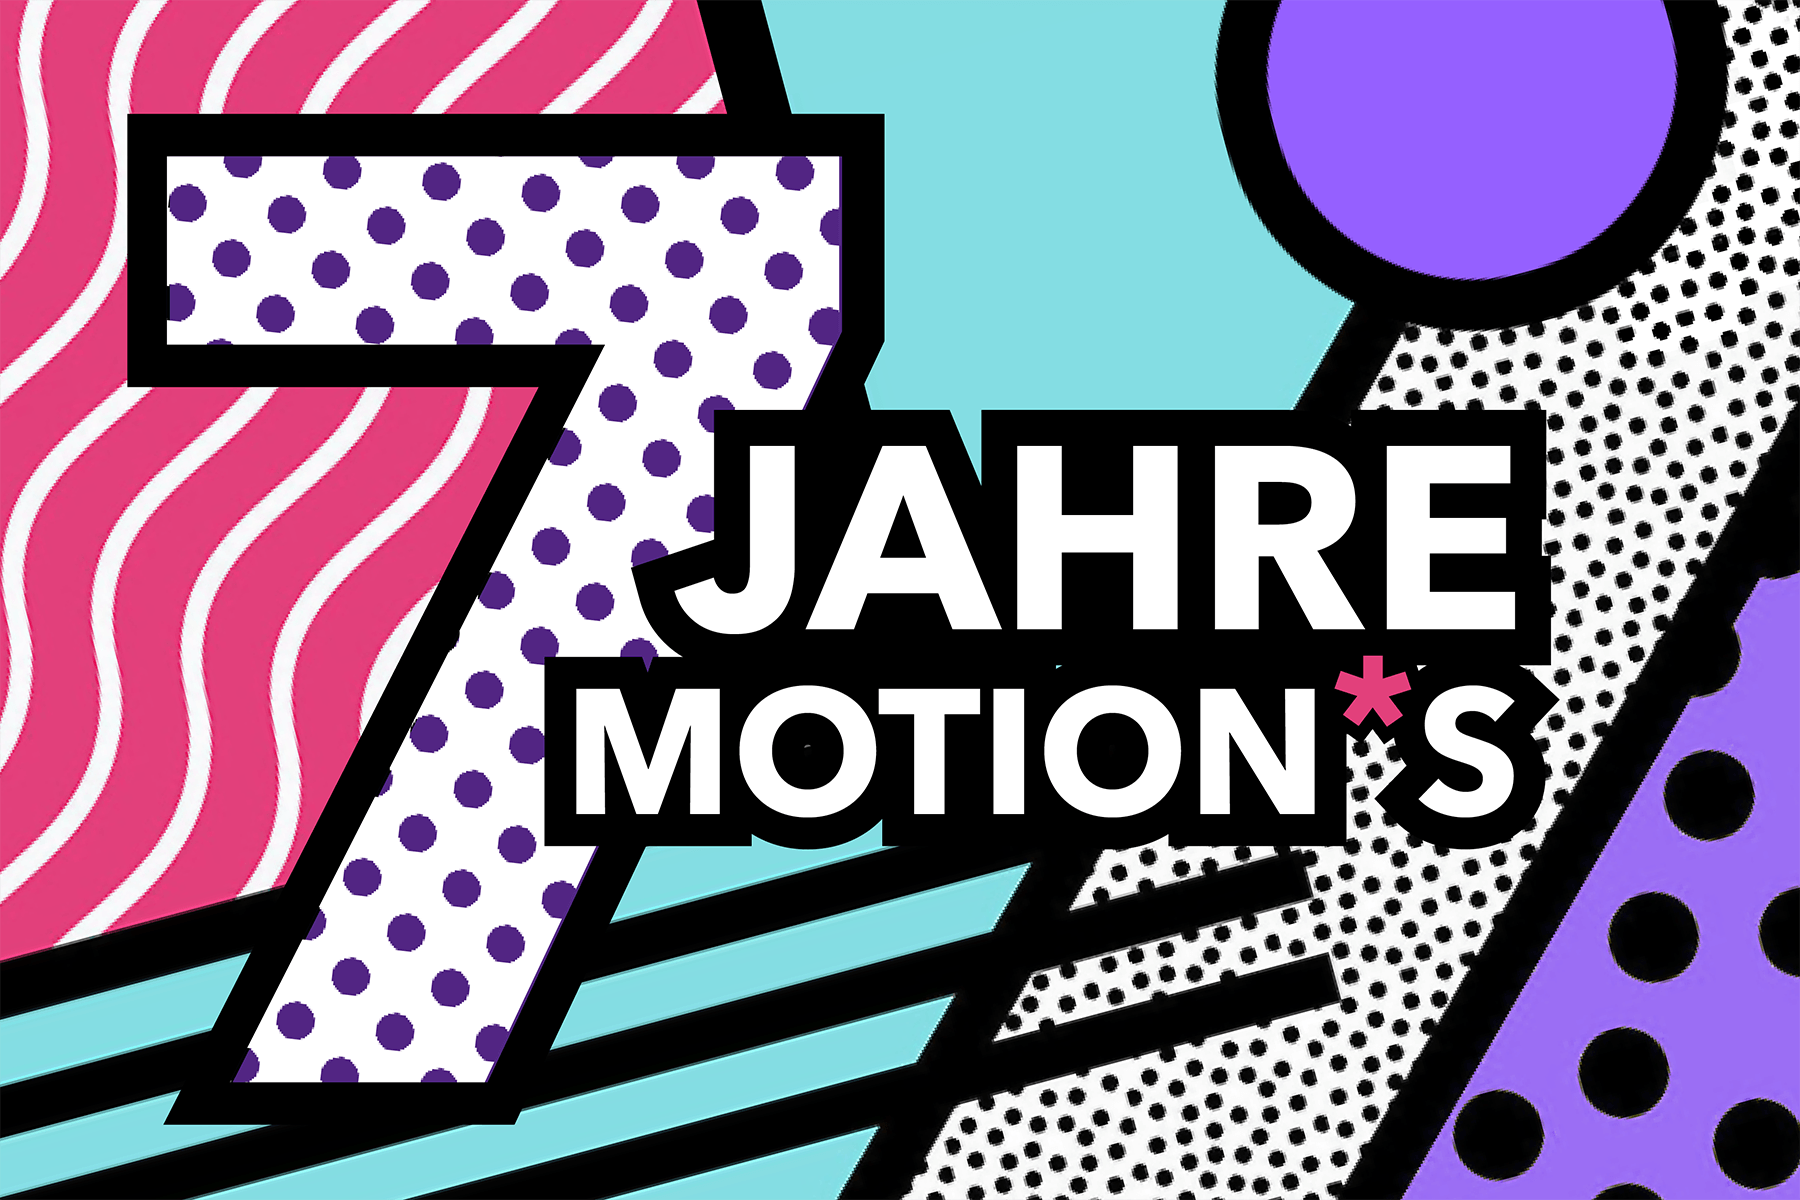 7Jahre_motions_dots_stripes_wp_